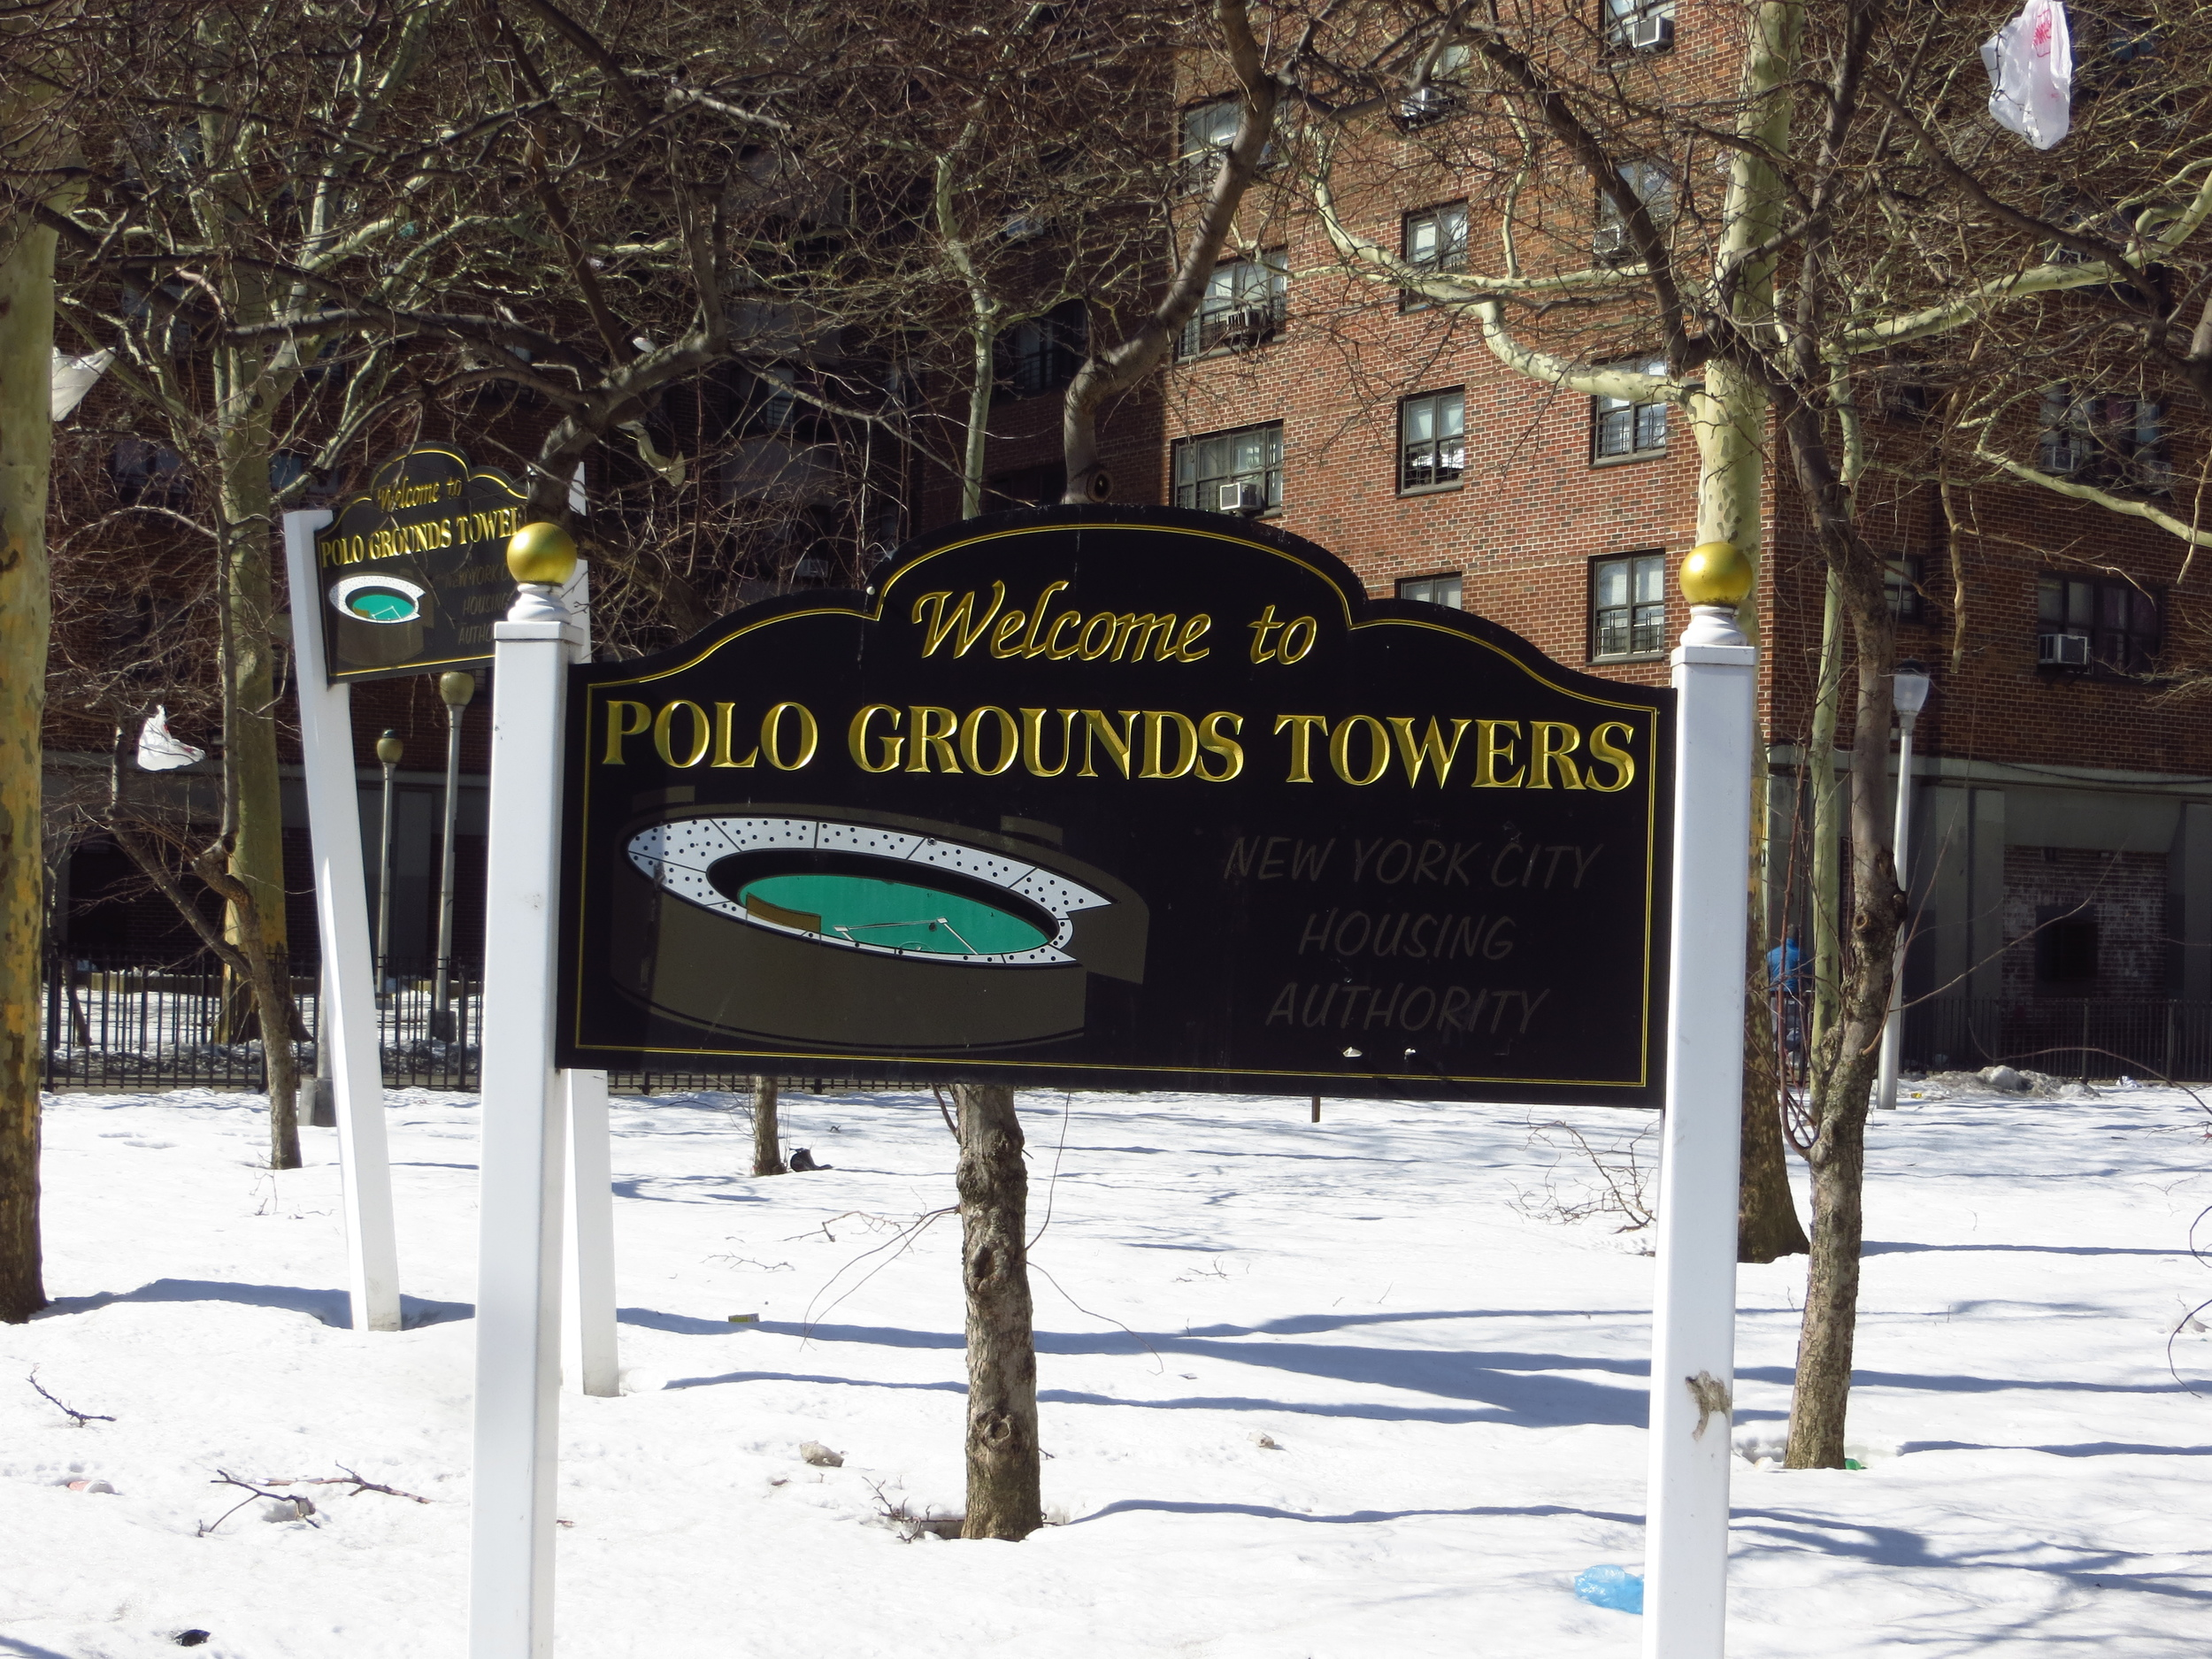 Polo Grounds Towers